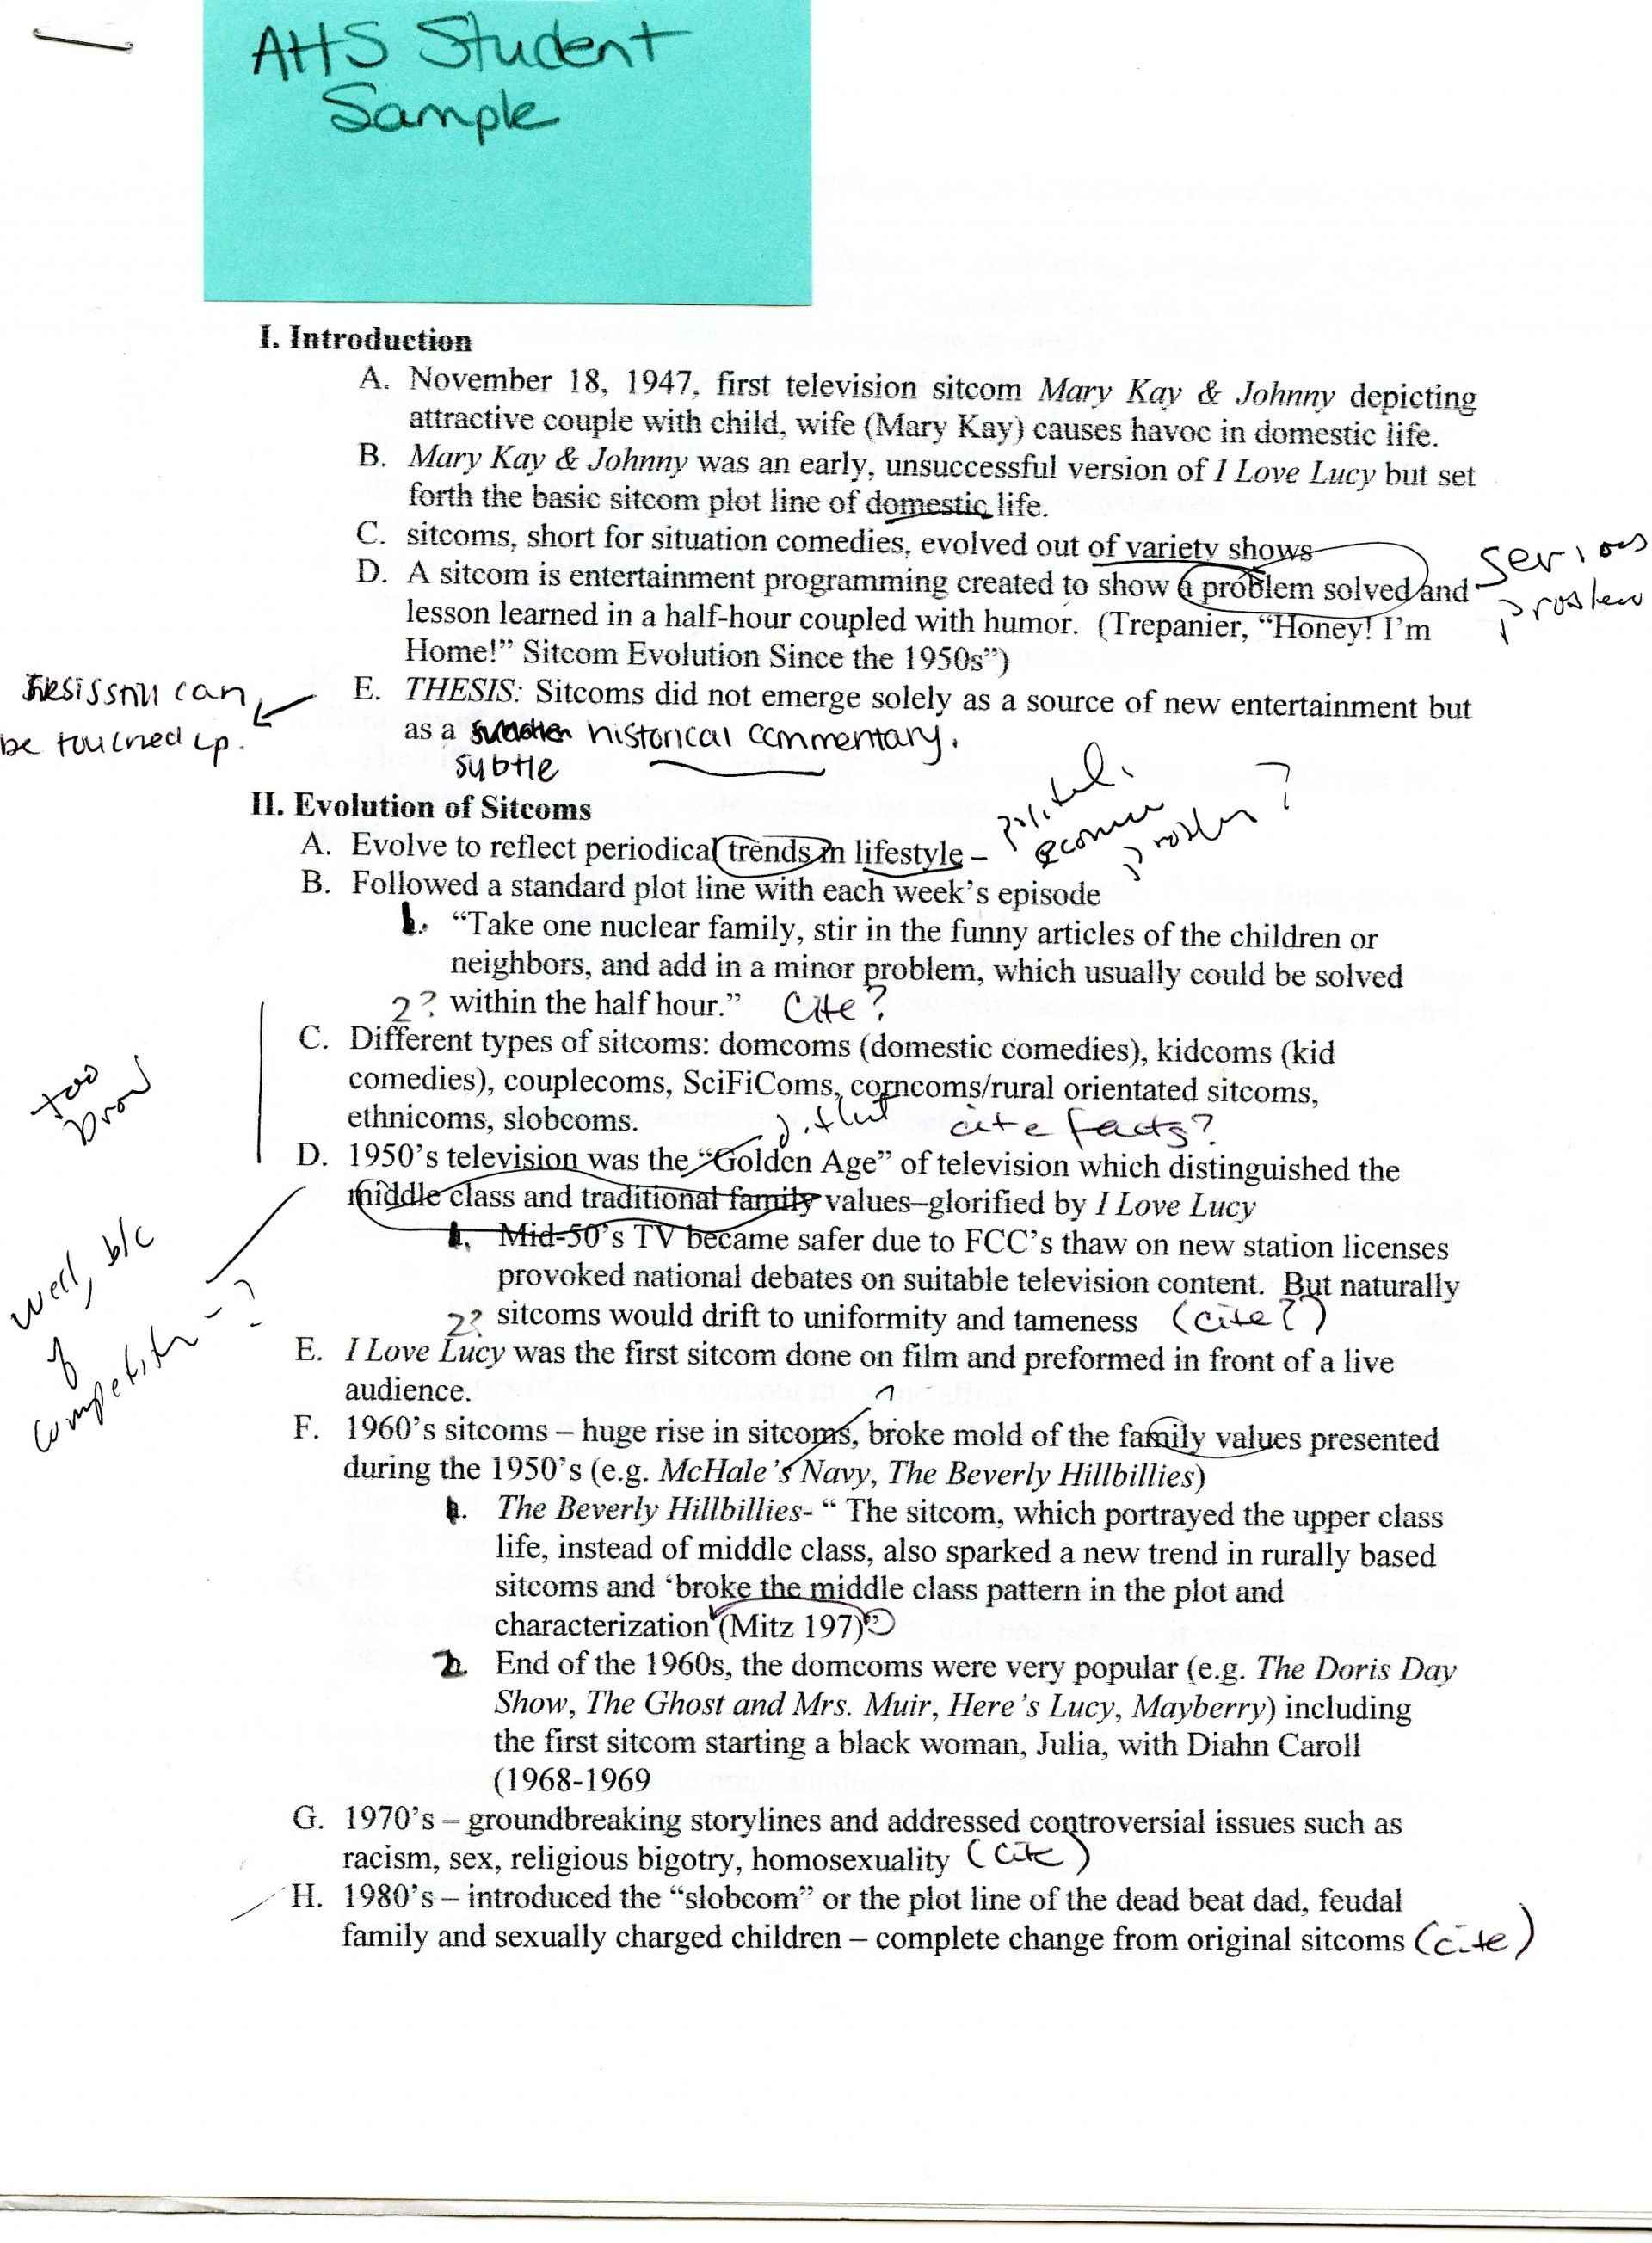 006 Smp Sample Outline 1 Thematic Essays Phenomenal Essay Examples For Us History Regents Global 1920